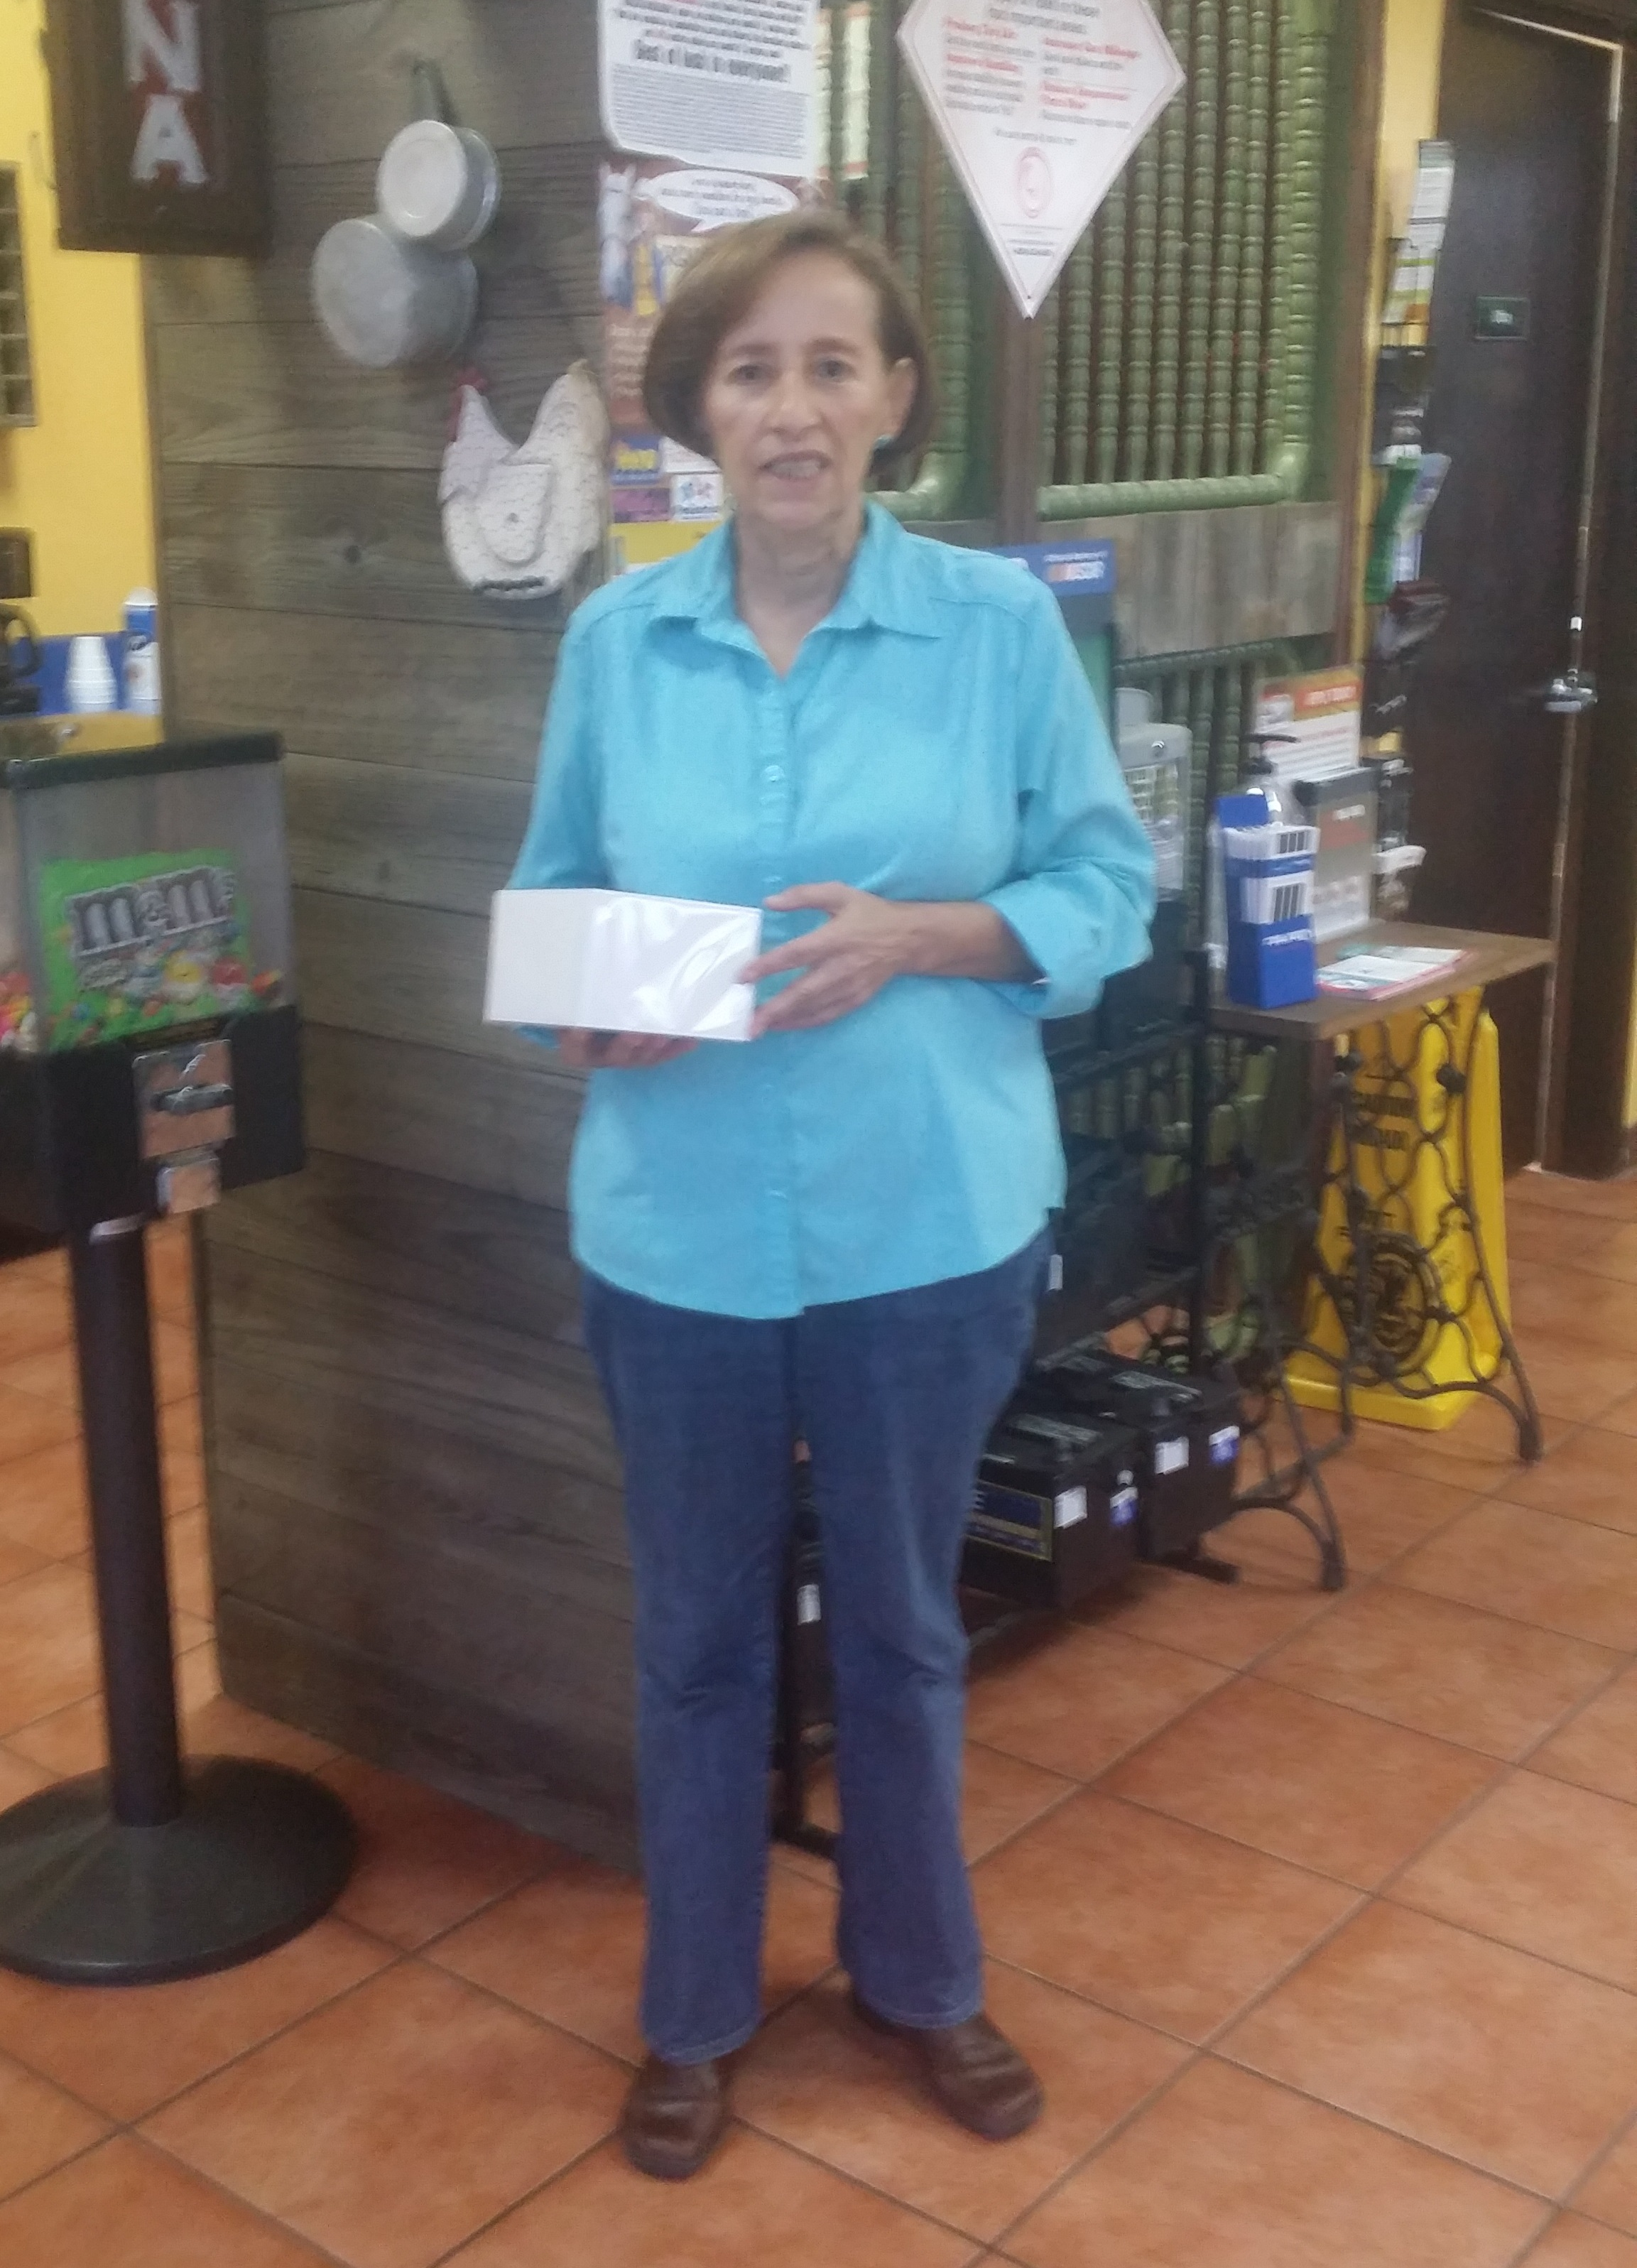 Pueblo Tires July iWatch Giveaway Winner - Congratulations Maria Barrick at the Mission, TX location